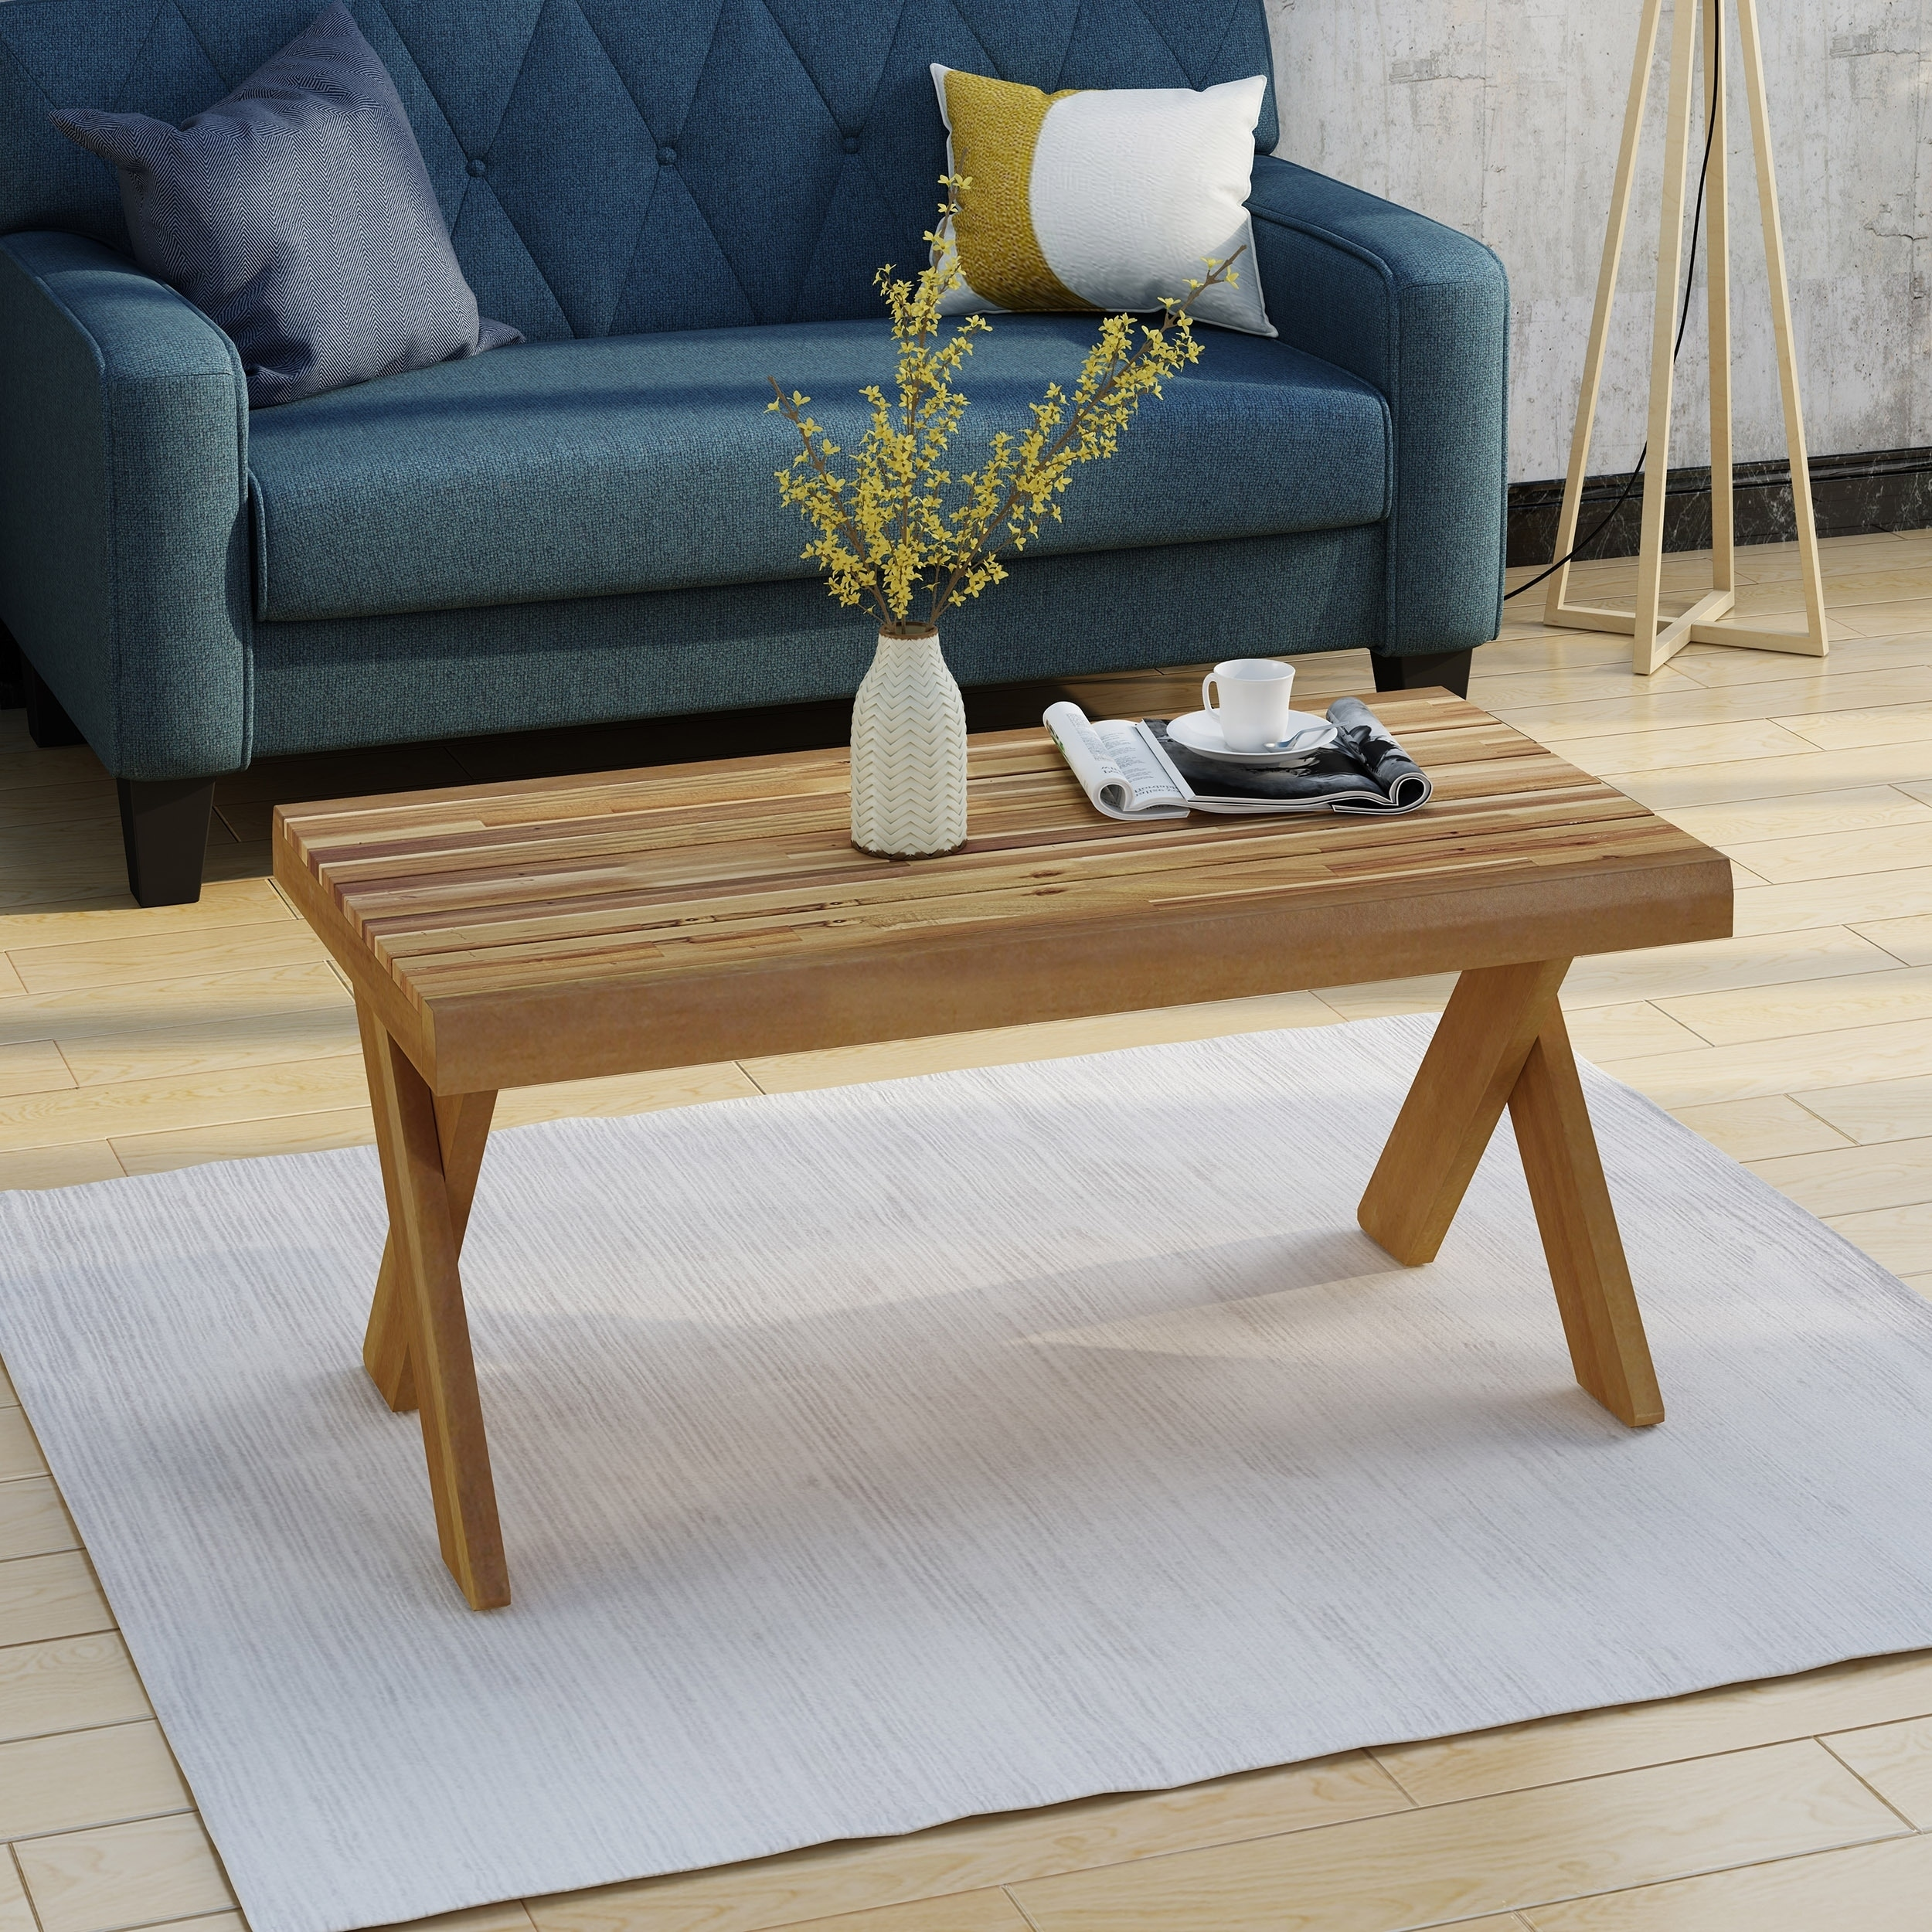 Esmeralda Farmhouse Acacia Wood Coffee Table By Christopher Knight Home Overstock 20746904